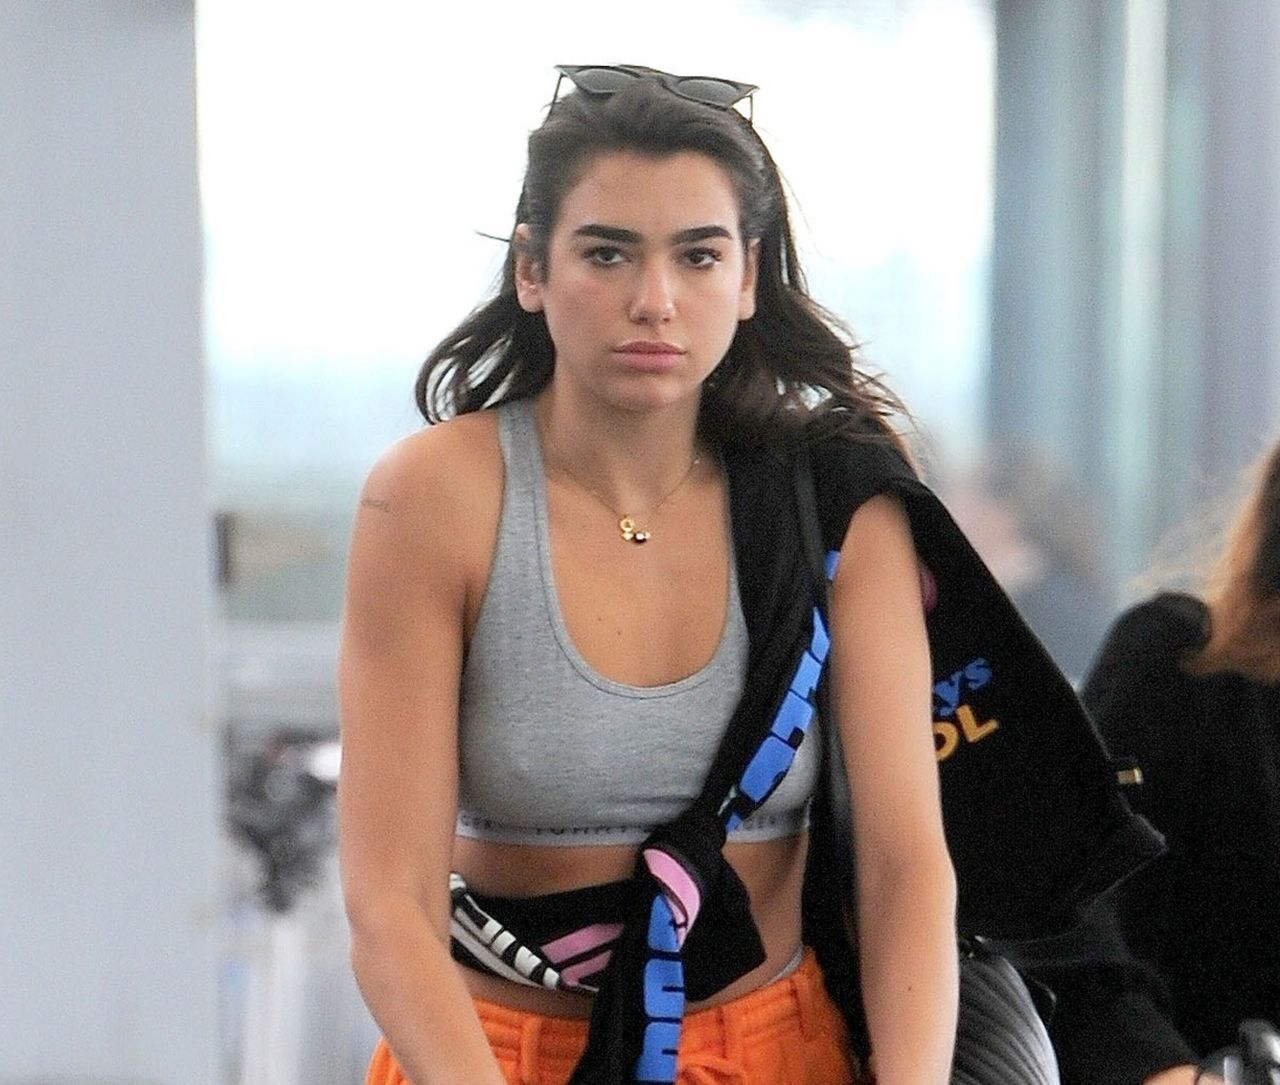 Dua Lipa At Heathrow Airport Heading Off For Her